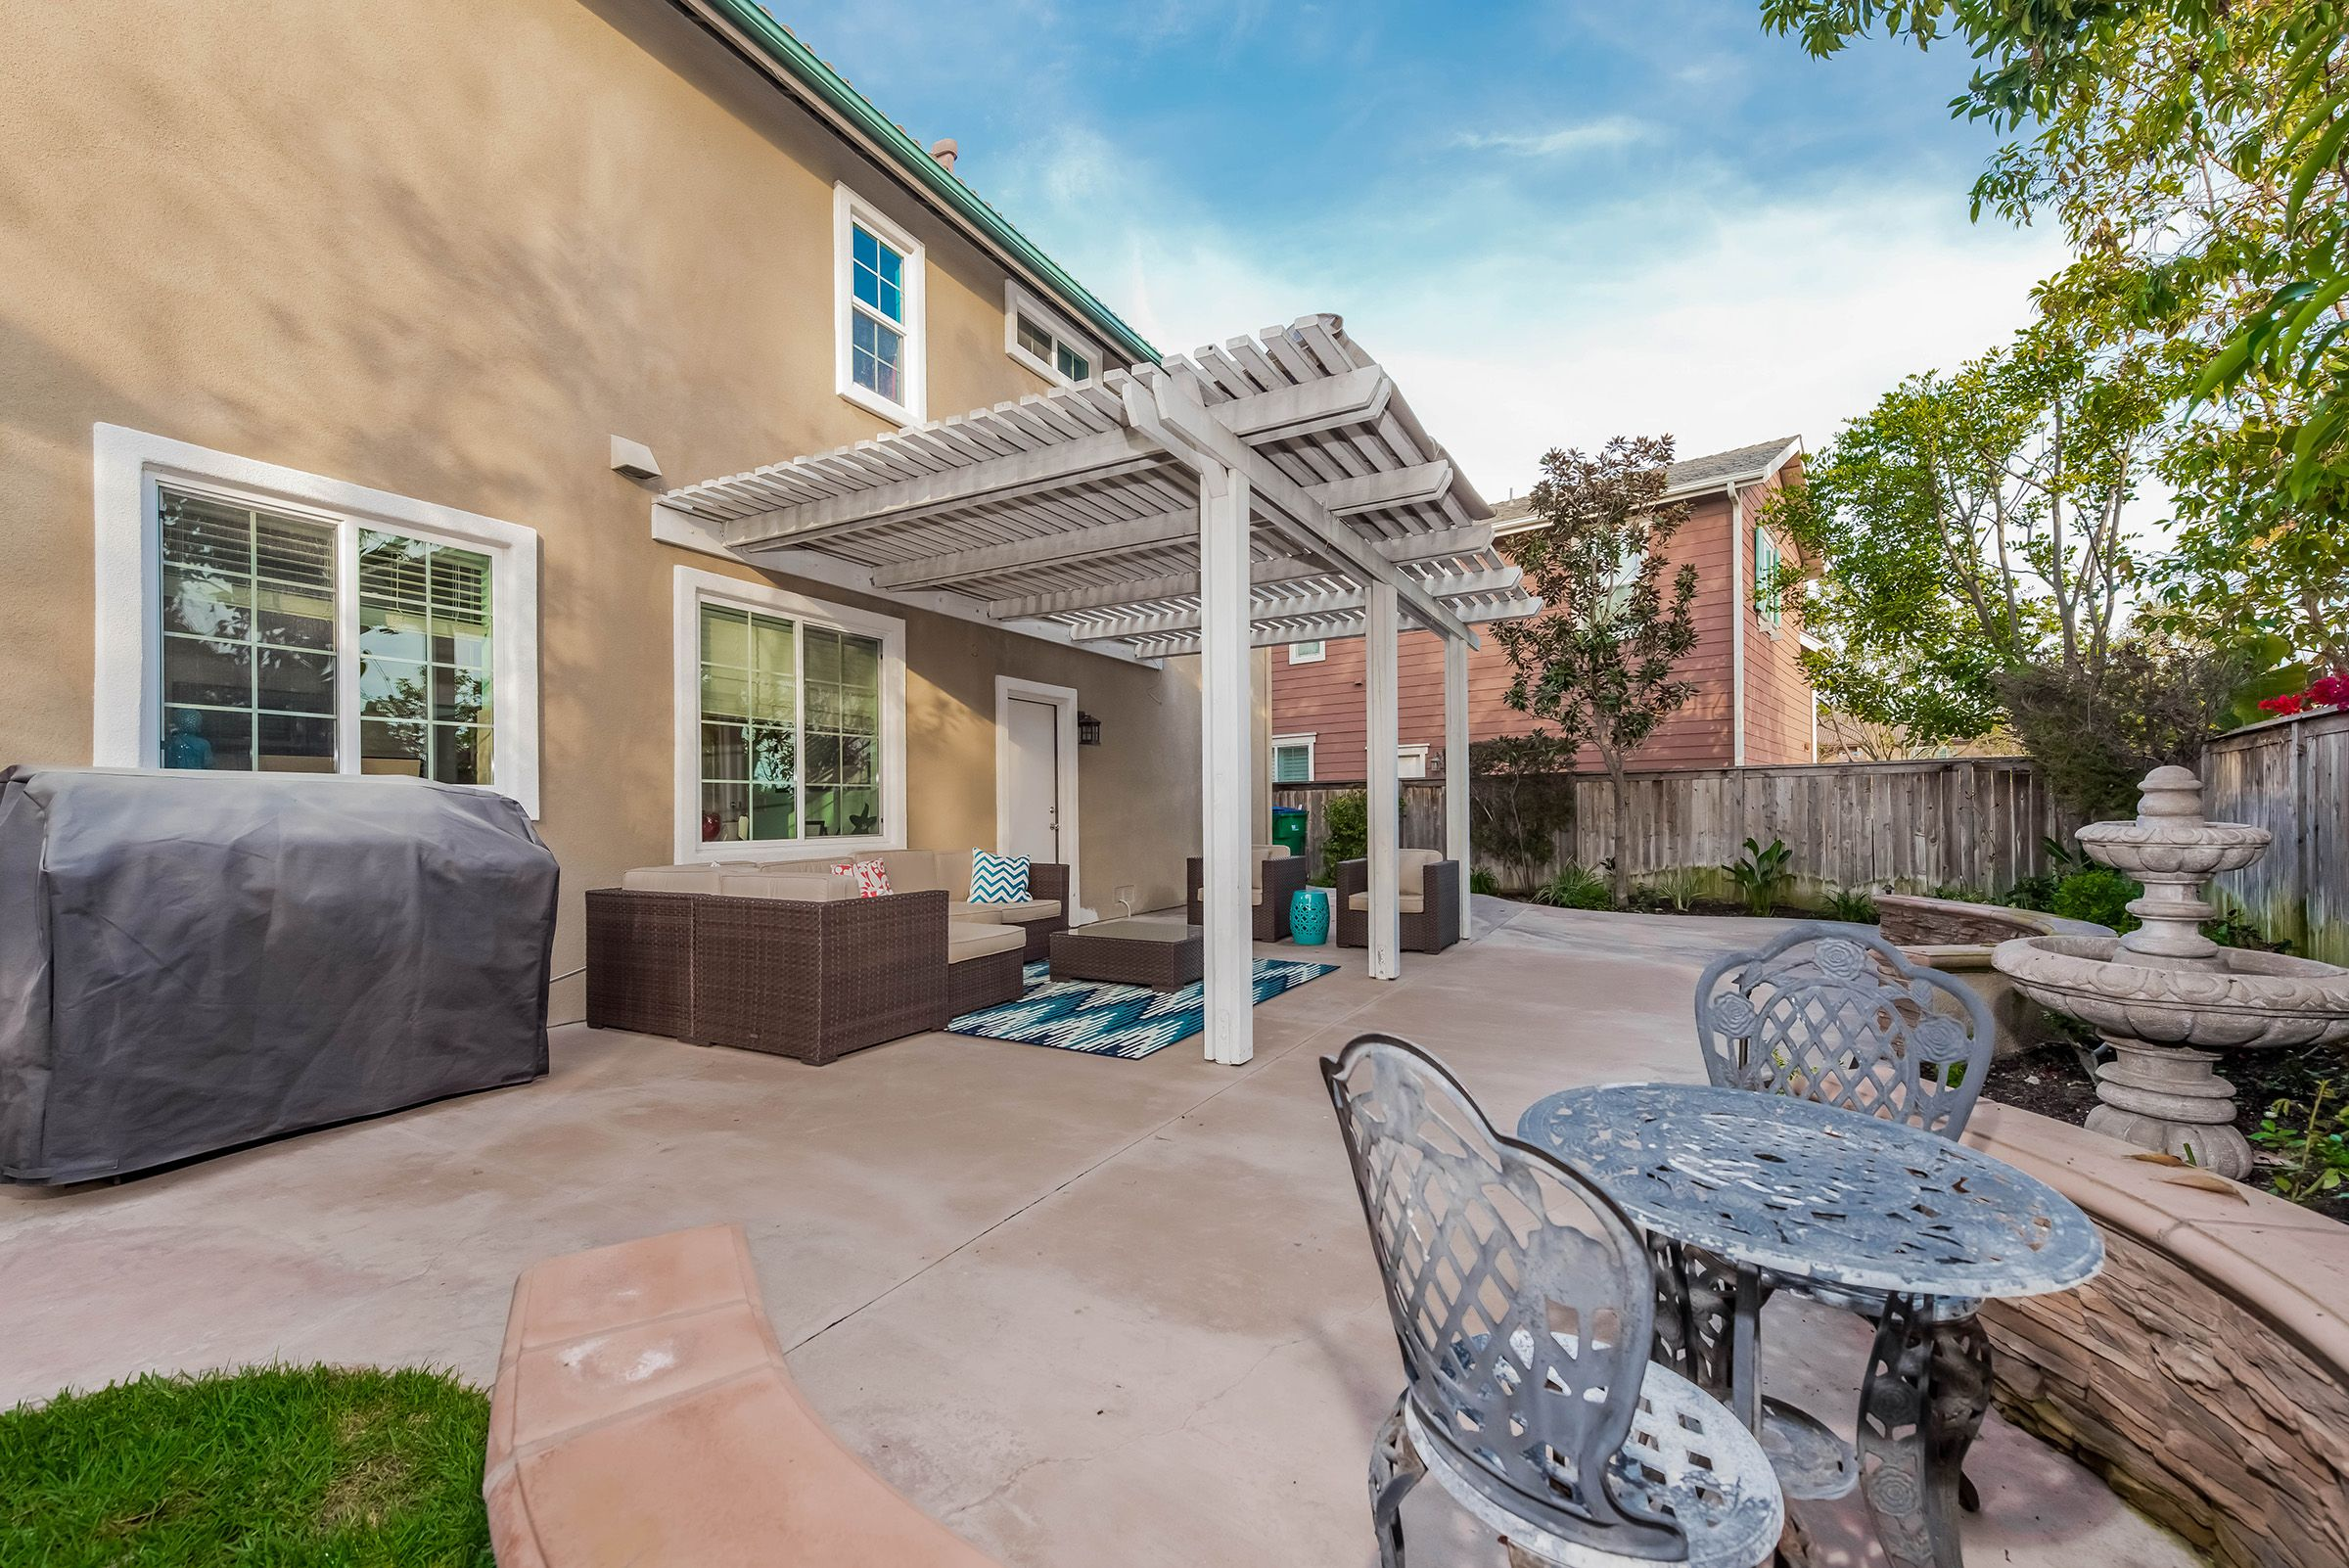 The entertainer's backyard with all new landscape, hardscape, lighting and sprinklers. | 10 Flowerdale, Ladera Ranch, CA